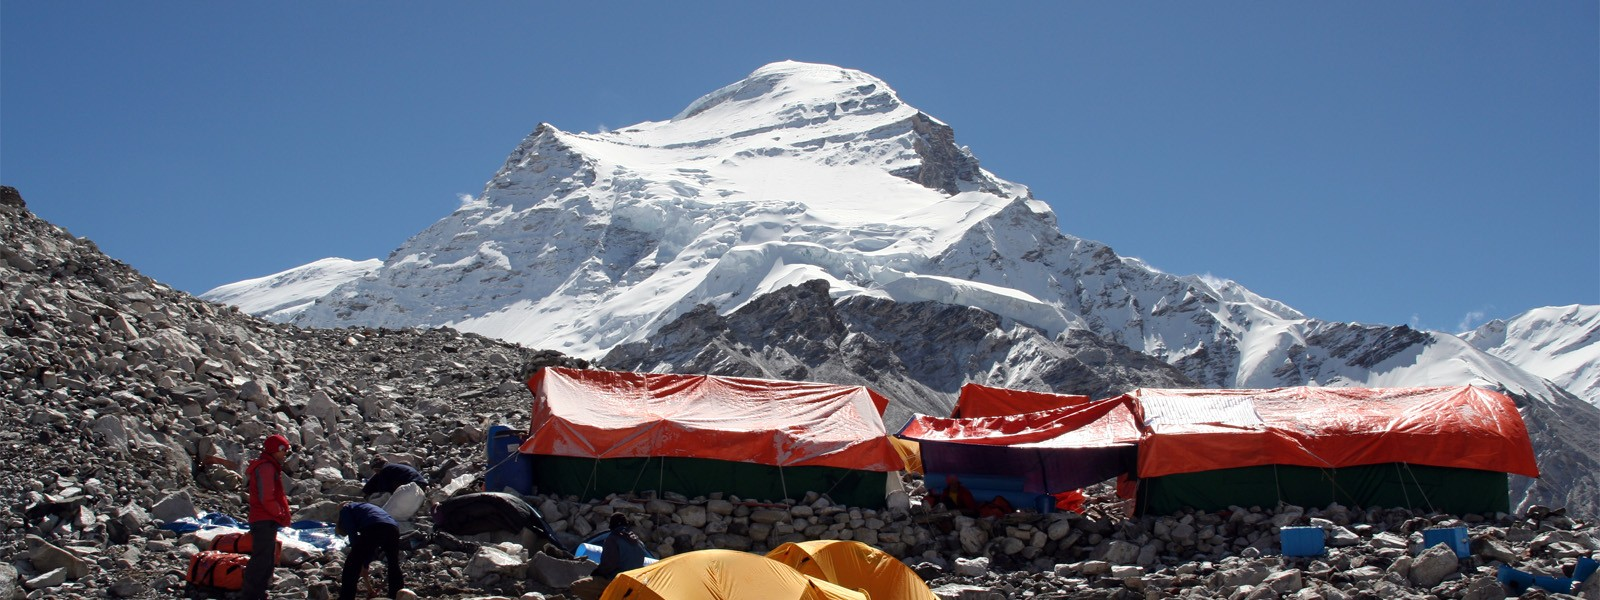 Mt. Cho Oyu Expedition 2020